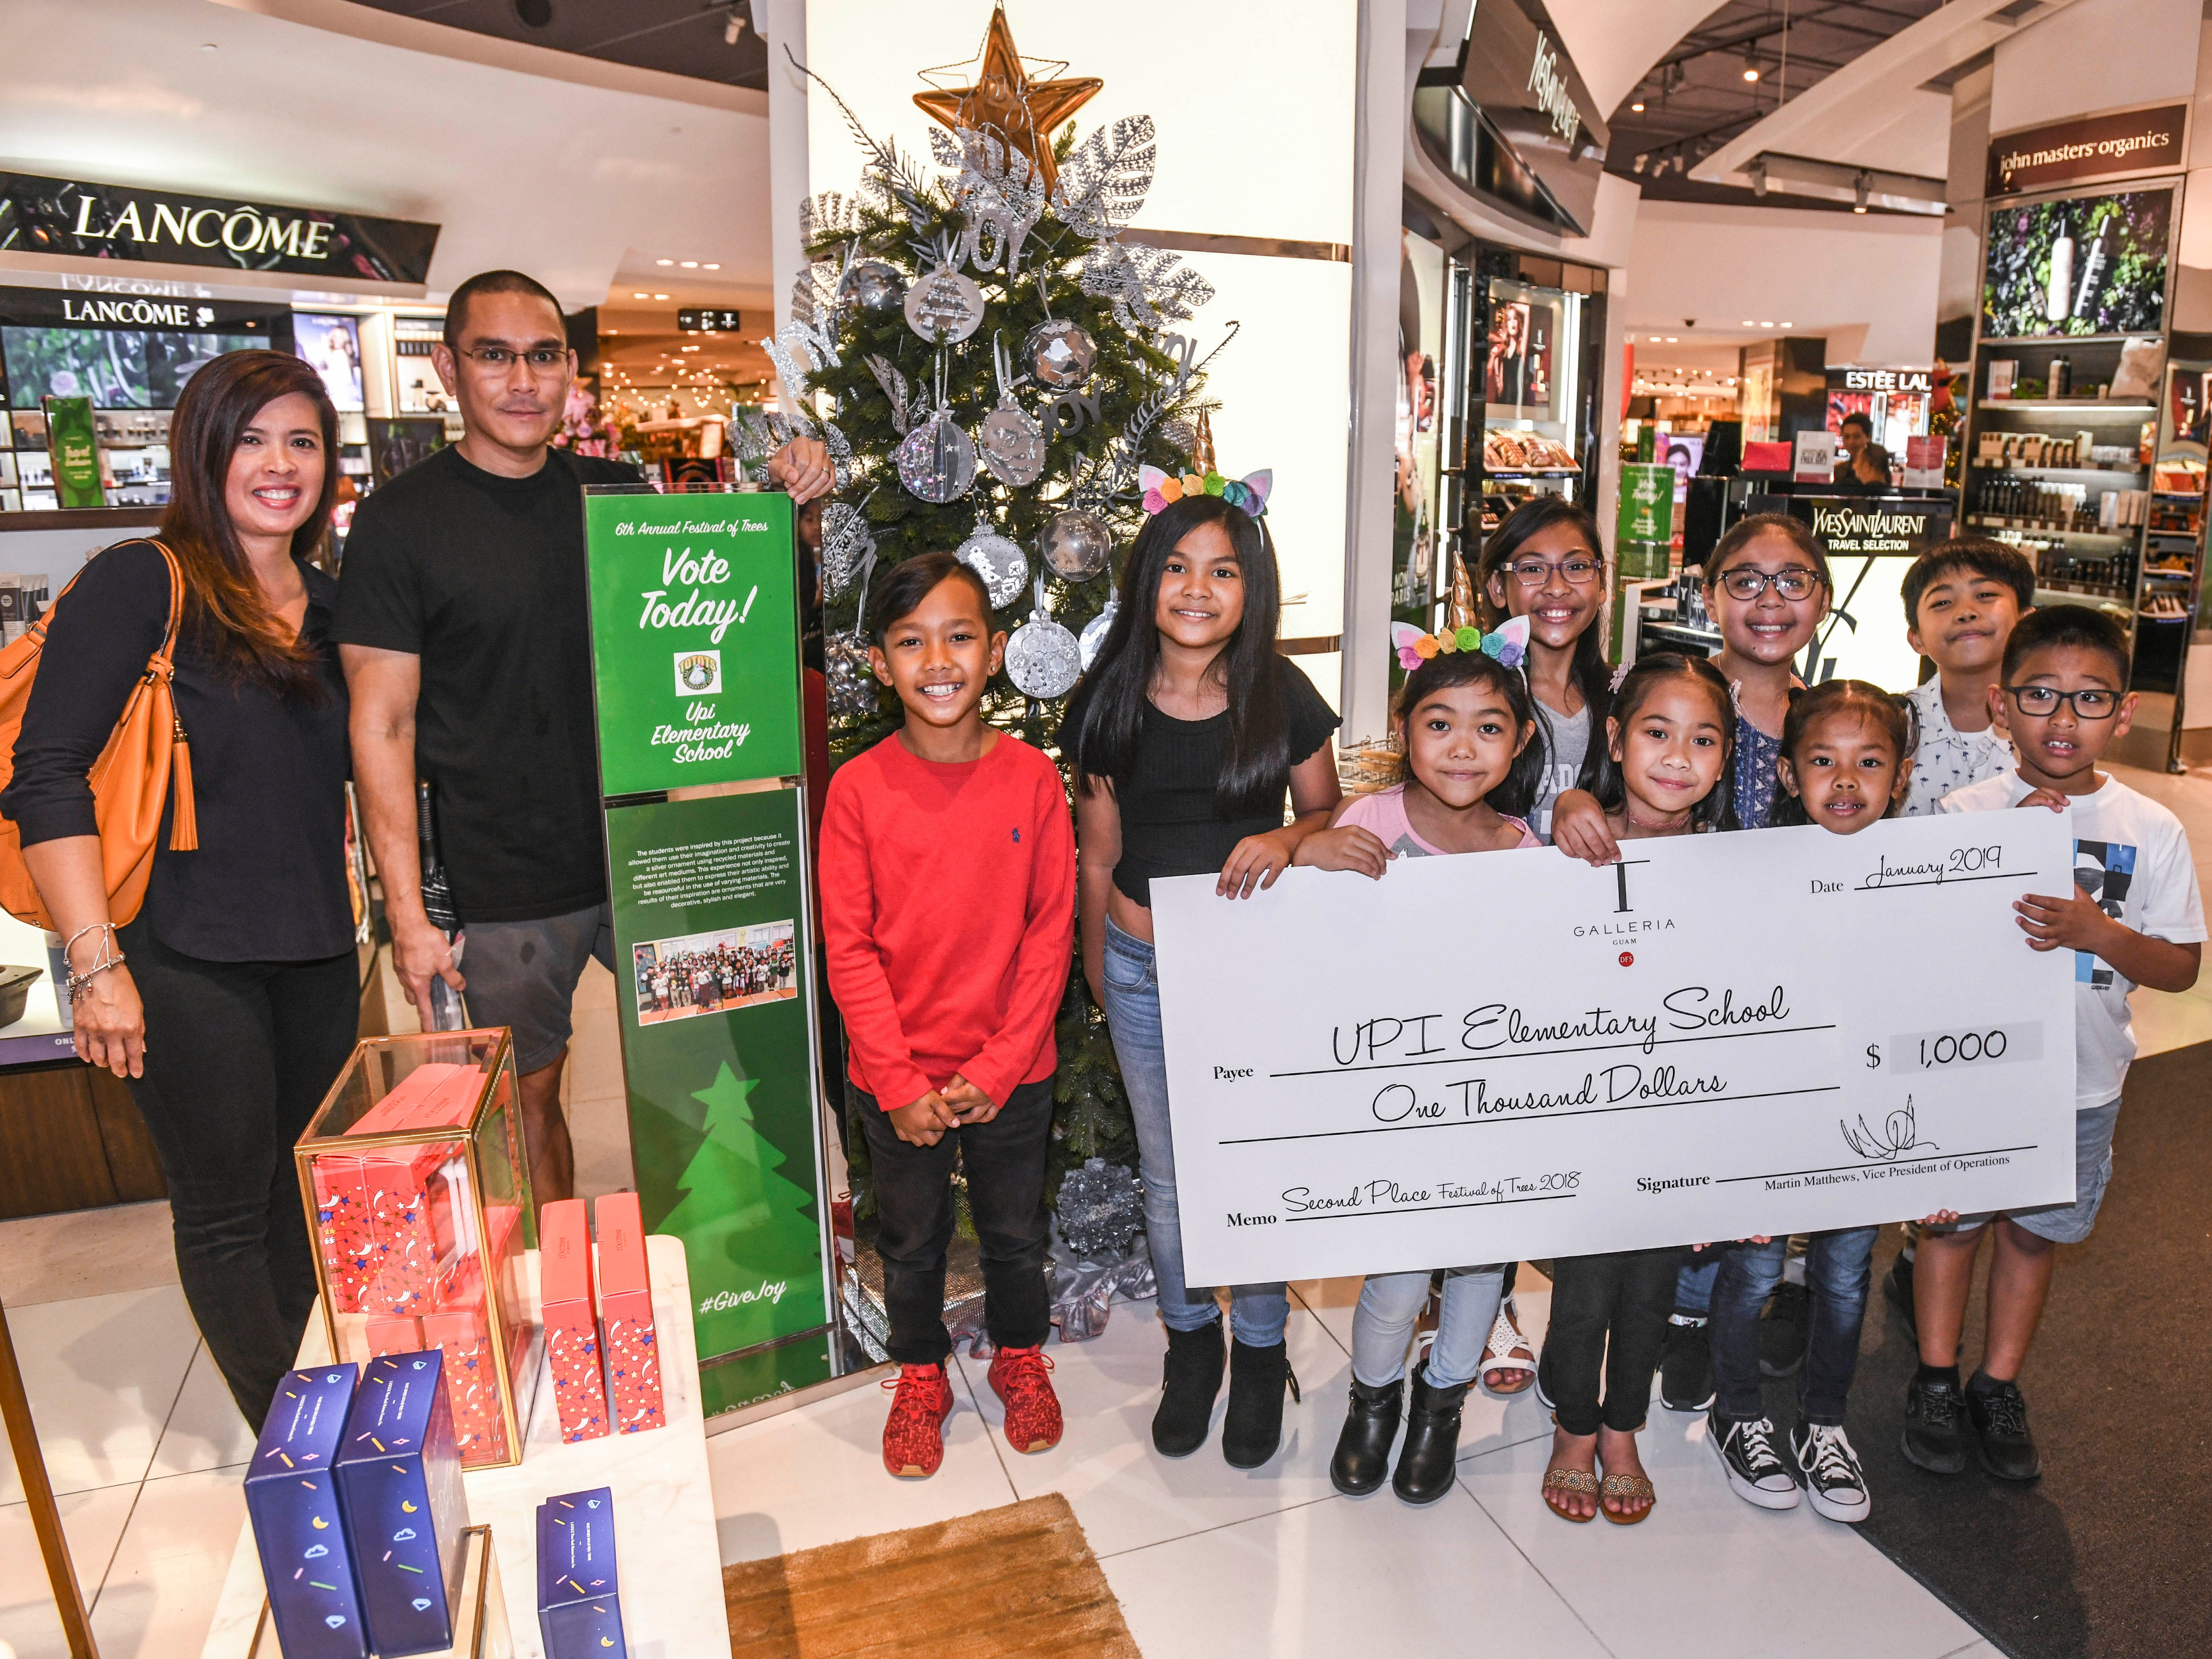 Upi Elementary School was announced as the second place winner and awarded $1,000 in the 6th annual Festival of Trees competition during a brief ceremony at the T Galleria by DFS in Tumon on Saturday, Jan. 5, 2019.